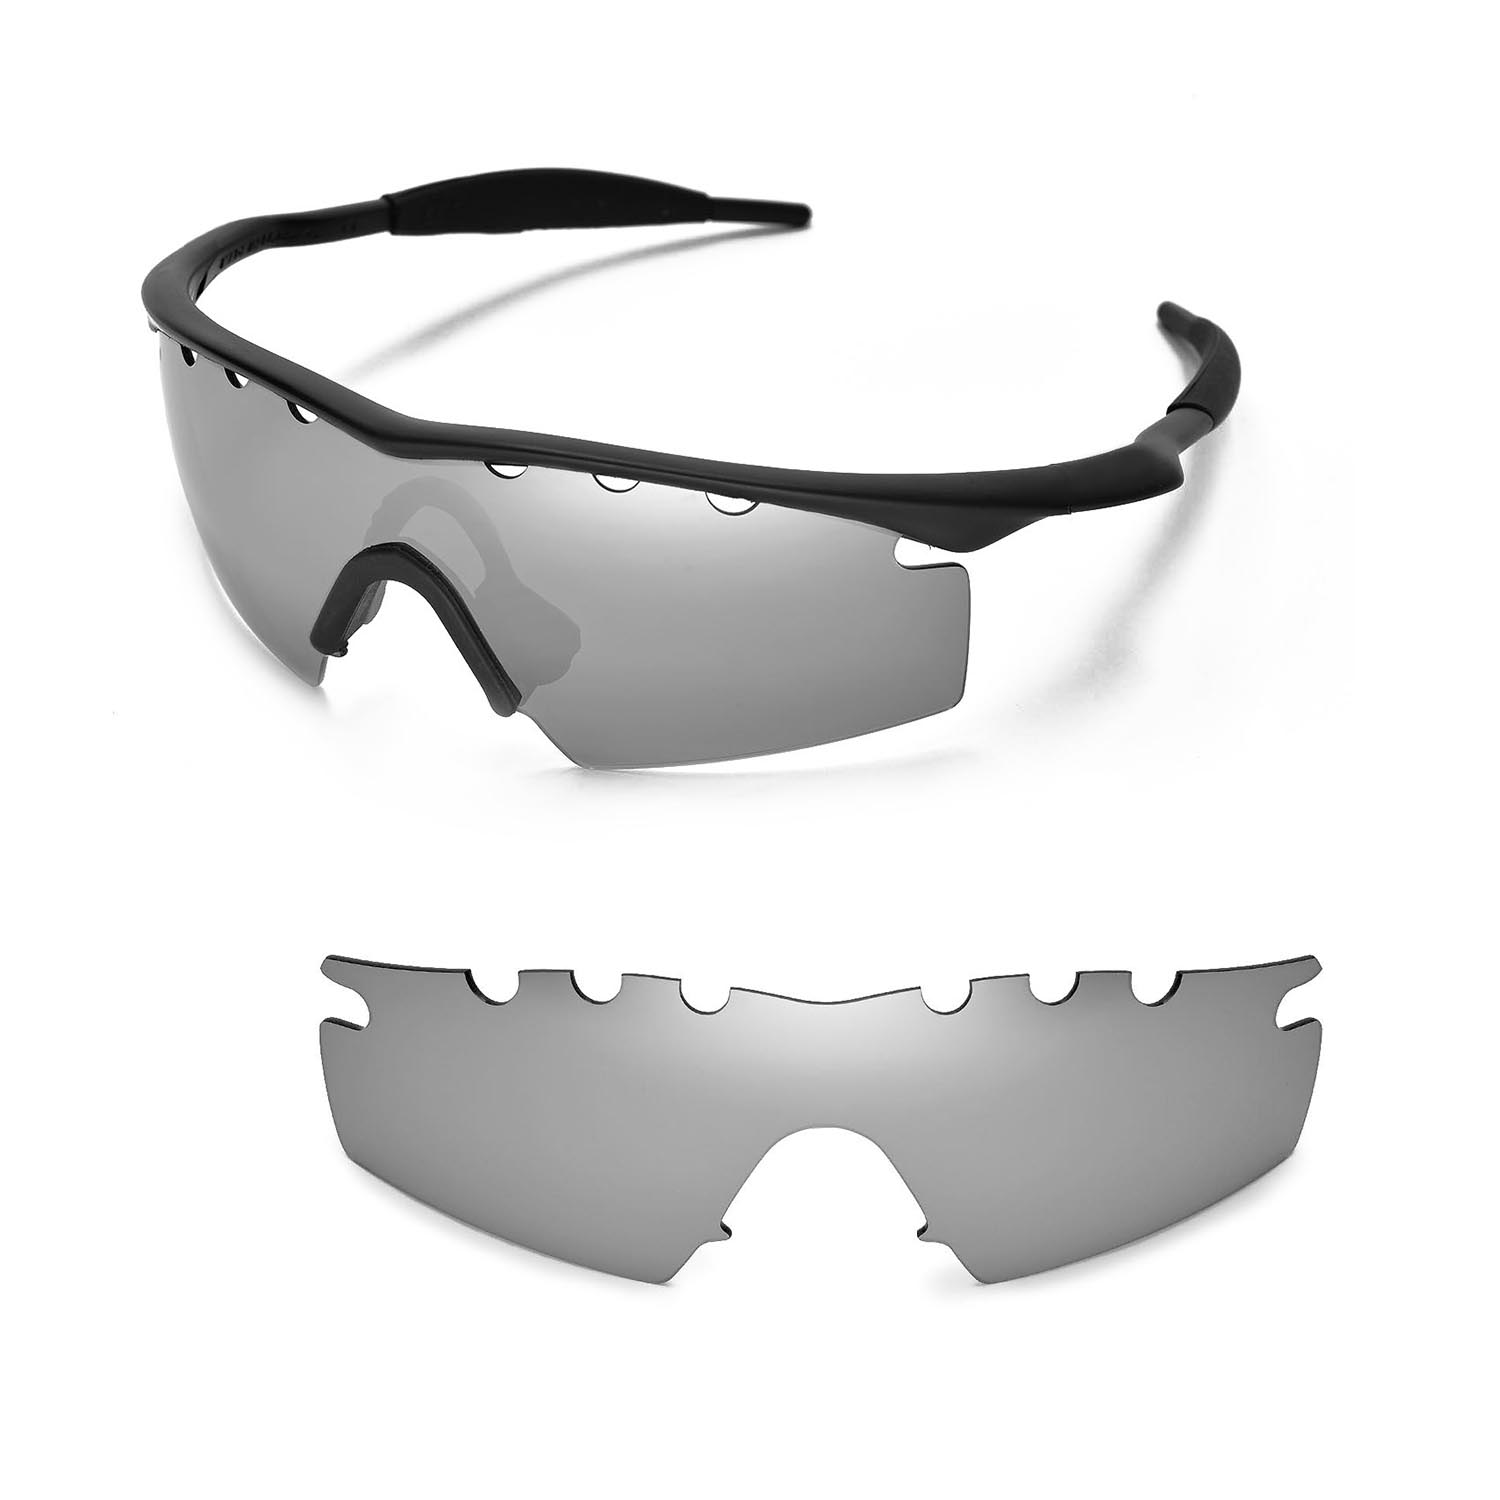 New WL Polarized Titanium Vented Replacement Lenses For Oakley M ...